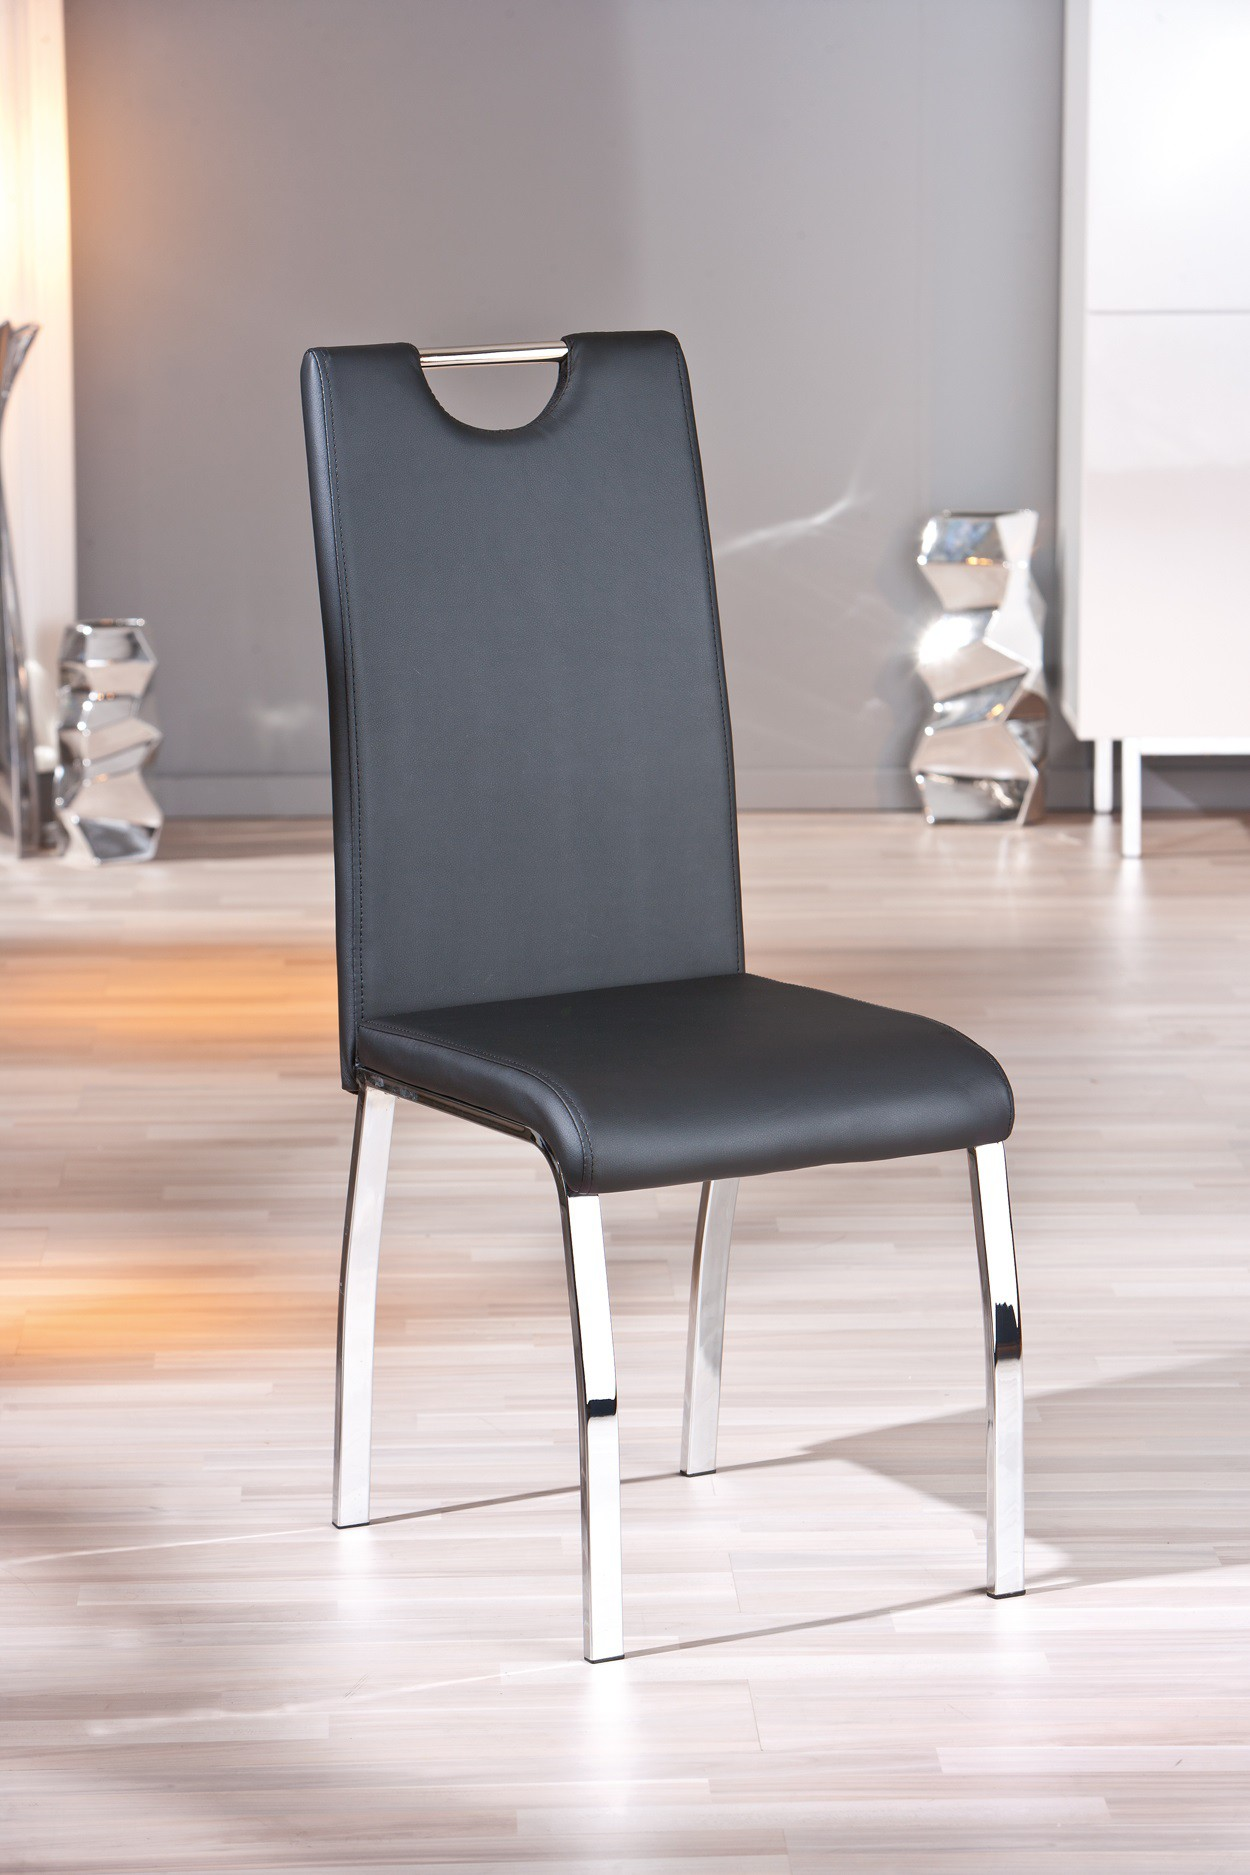 Chaises Salle Manger Cuir Best With Chaises Salle Manger Cuir Good